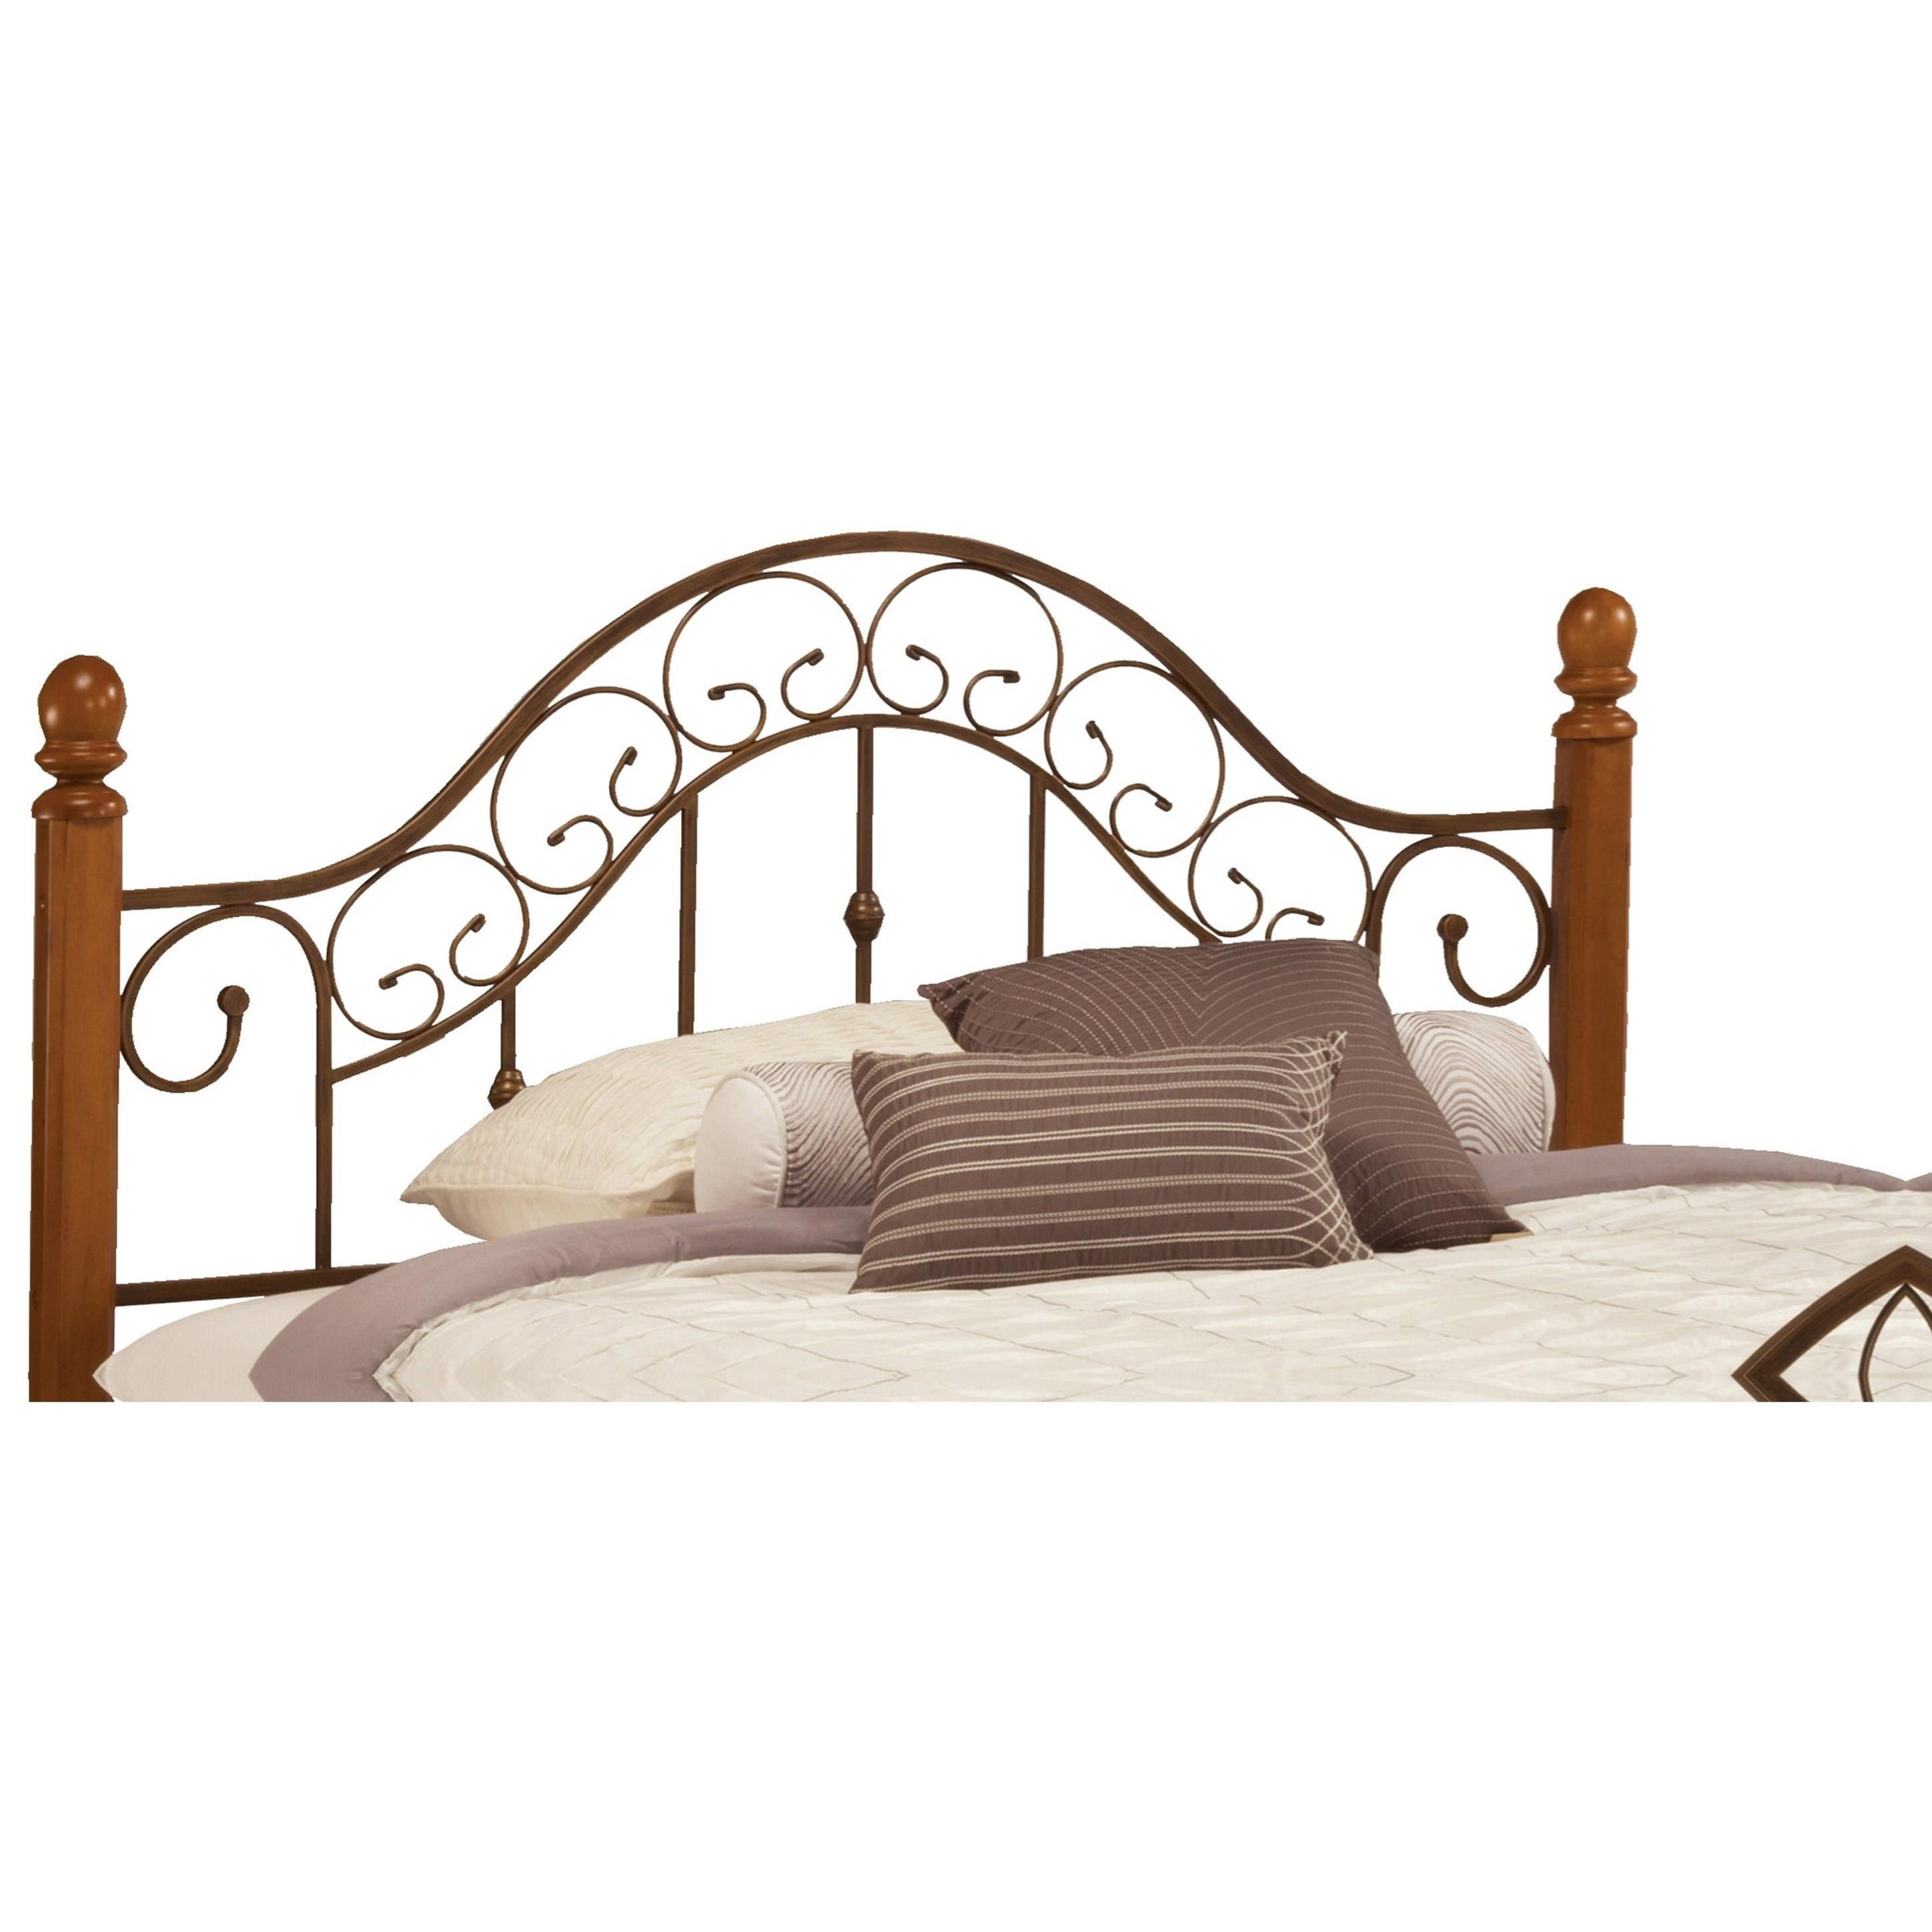 Hillsdale Metal Beds Full/Queen San Marco Headboard - Item Number: 310HFQ